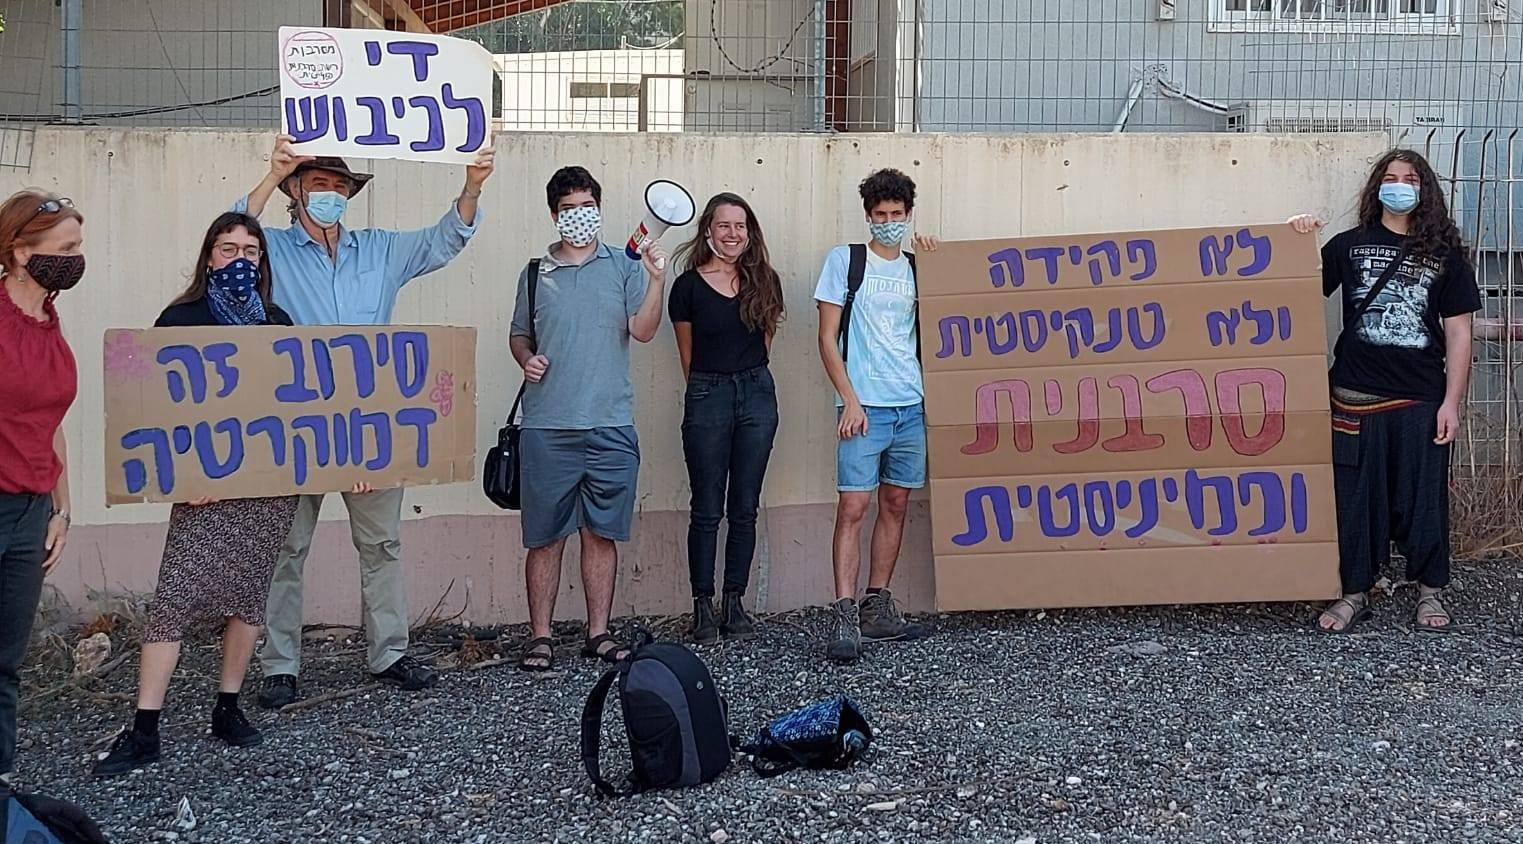 "Demonstrators express solidarity with Hallel Rabin (center, wearing black) outside the Tel Hashomer military induction center near Tel Aviv, October 21, 2020. The large placard at the right reads: ""Not as a clerk and not in a tank – Rather a refuser and feminist""; at the left the sign held aloft reads ""End the occupation""; and the placard below it reads: ""Refusal is democracy."""